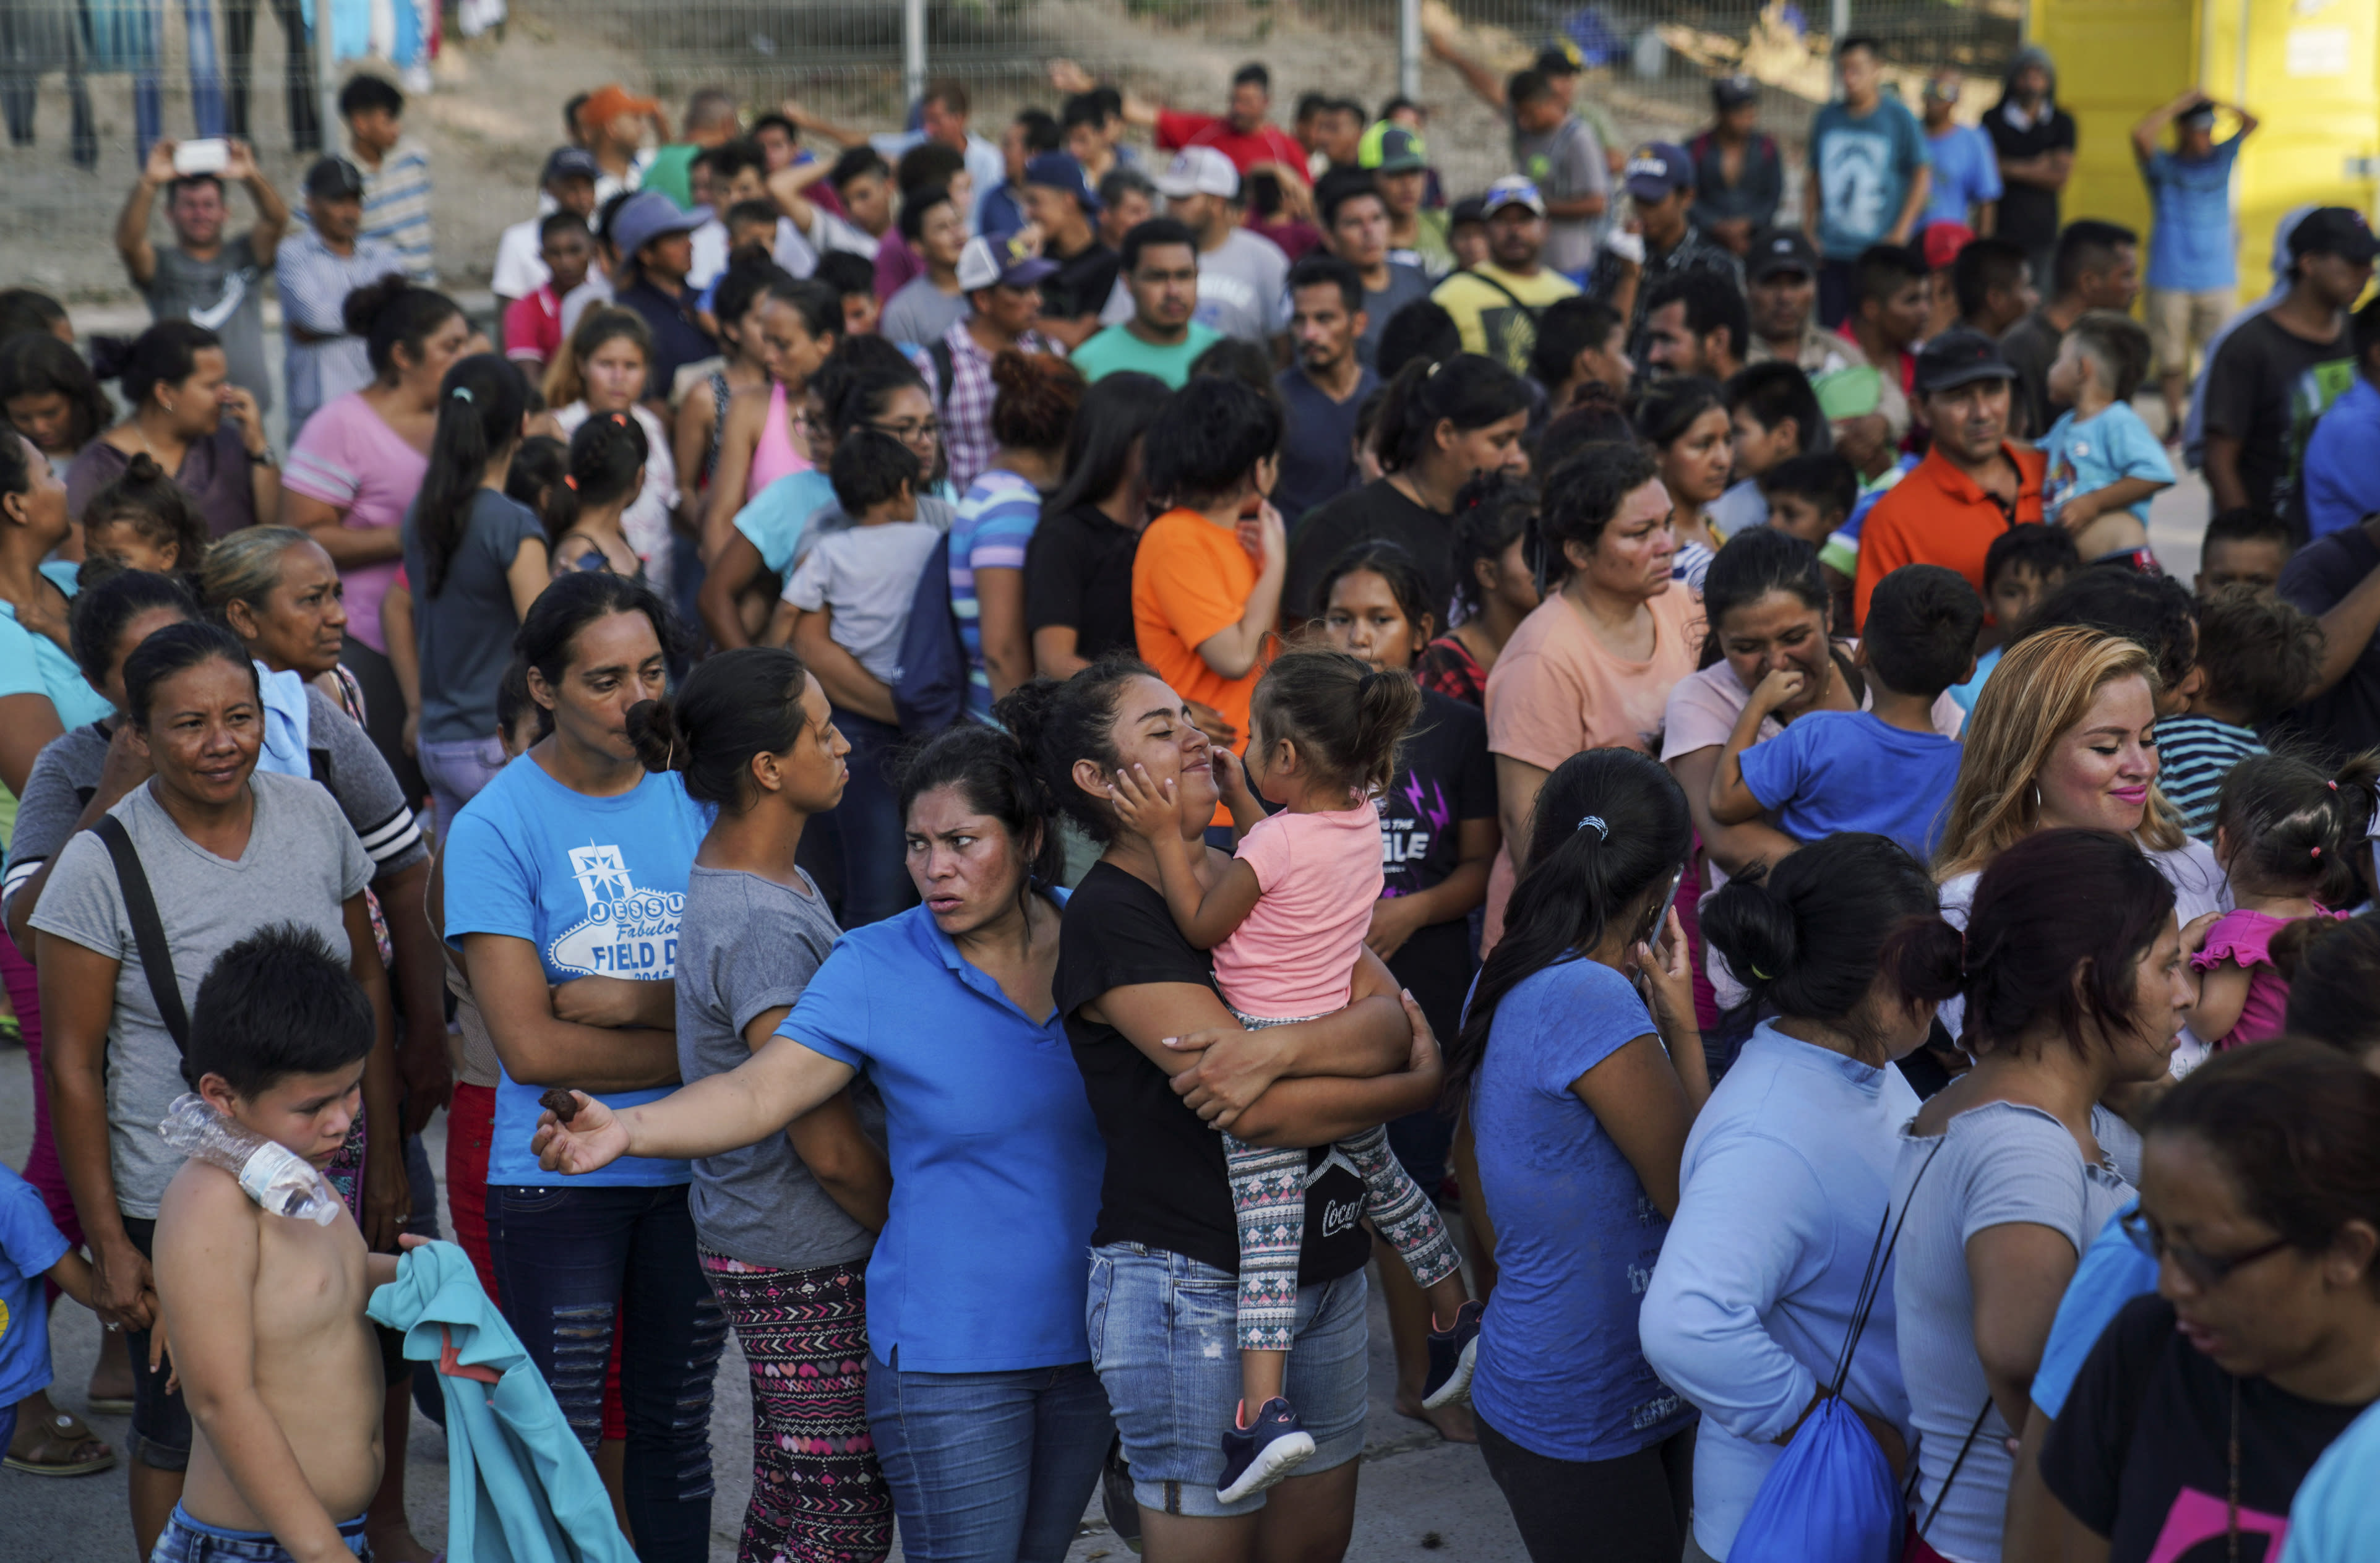 """In this Aug. 30, 2019, photo, migrants, many who were returned to Mexico under the Trump administration's """"Remain in Mexico,"""" program wait in line to get a meal in an encampment near the Gateway International Bridge in Matamoros. Many shelters at the Mexico border are at or above capacity already, and some families have been sleeping in tents or on blankets in the blistering summer heat. (AP Photo/Veronica G. Cardenas)"""